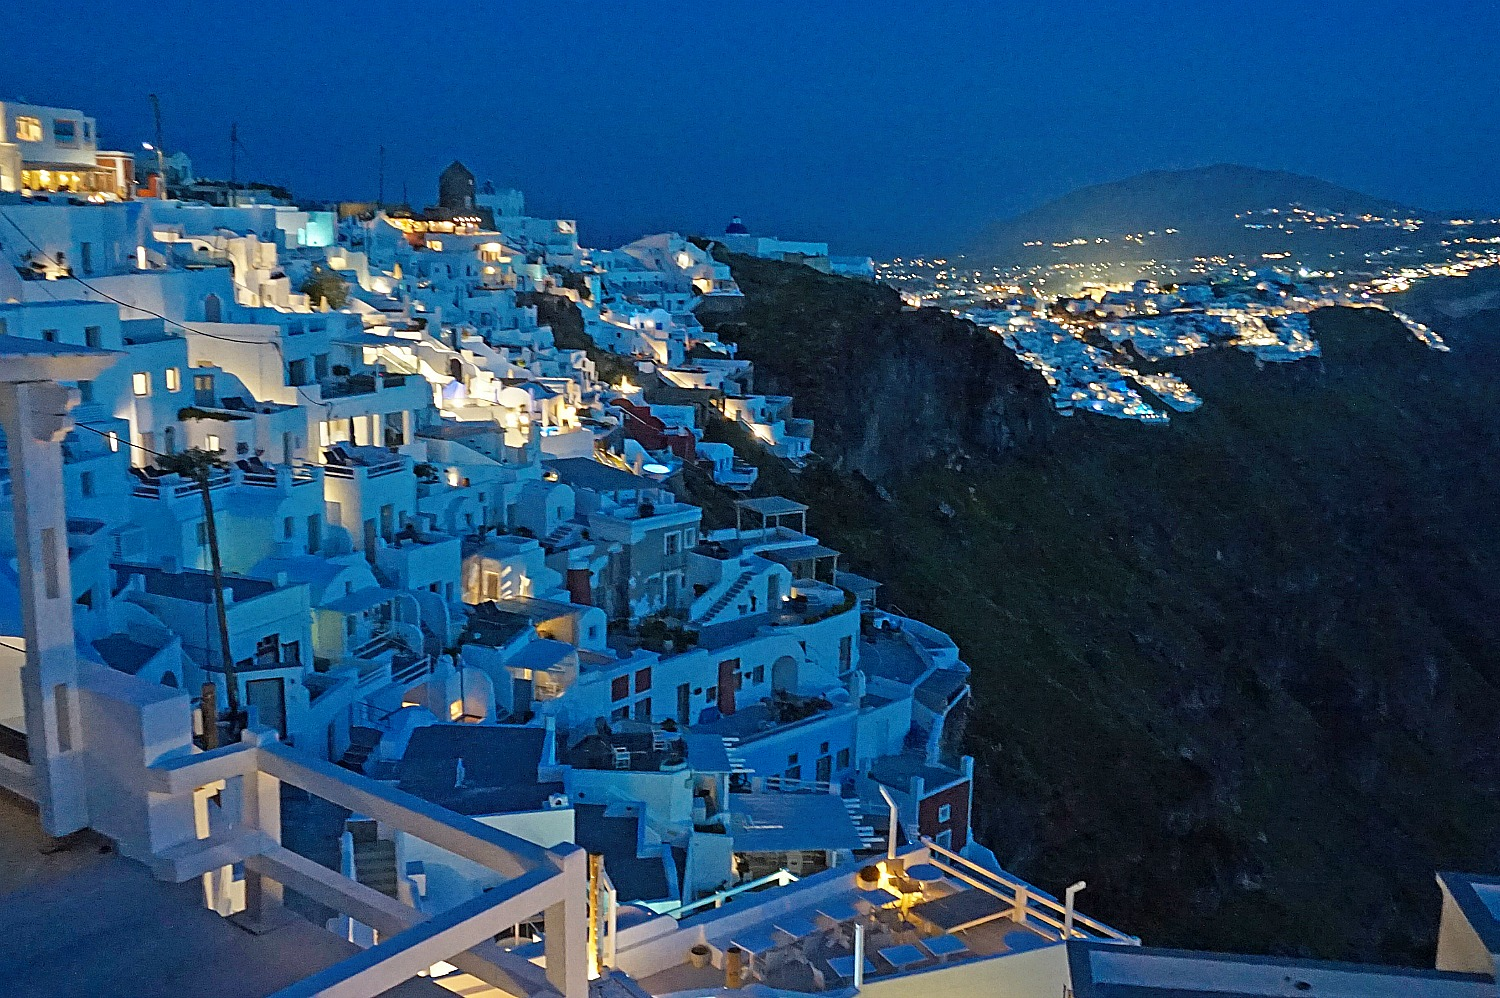 Night views of Imerovigli Santorini.